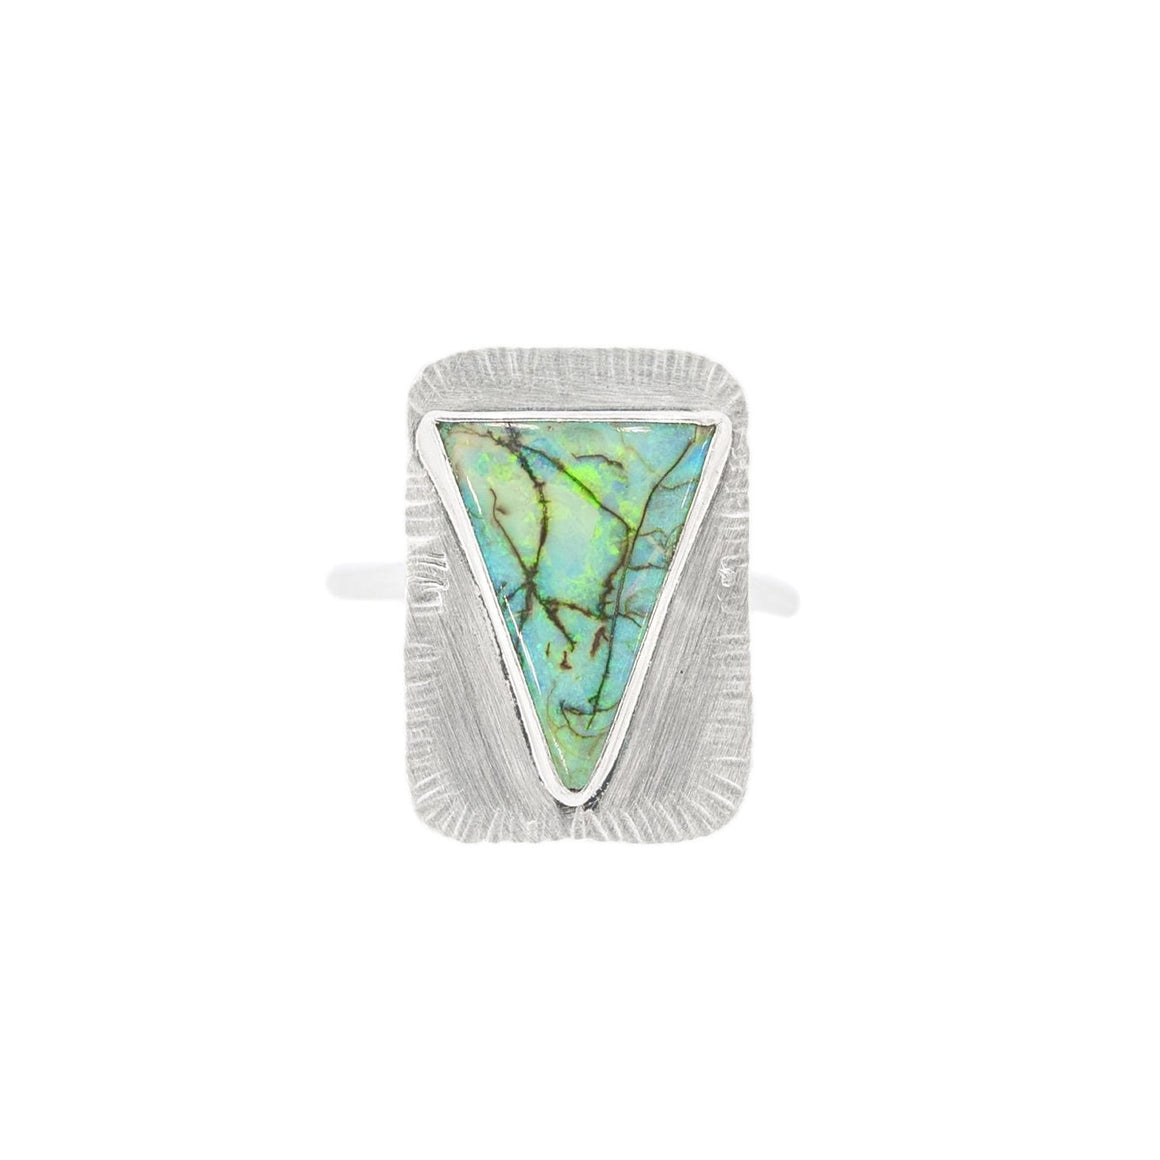 Modern Opal Ring in Silver by Original Sin Jewelry